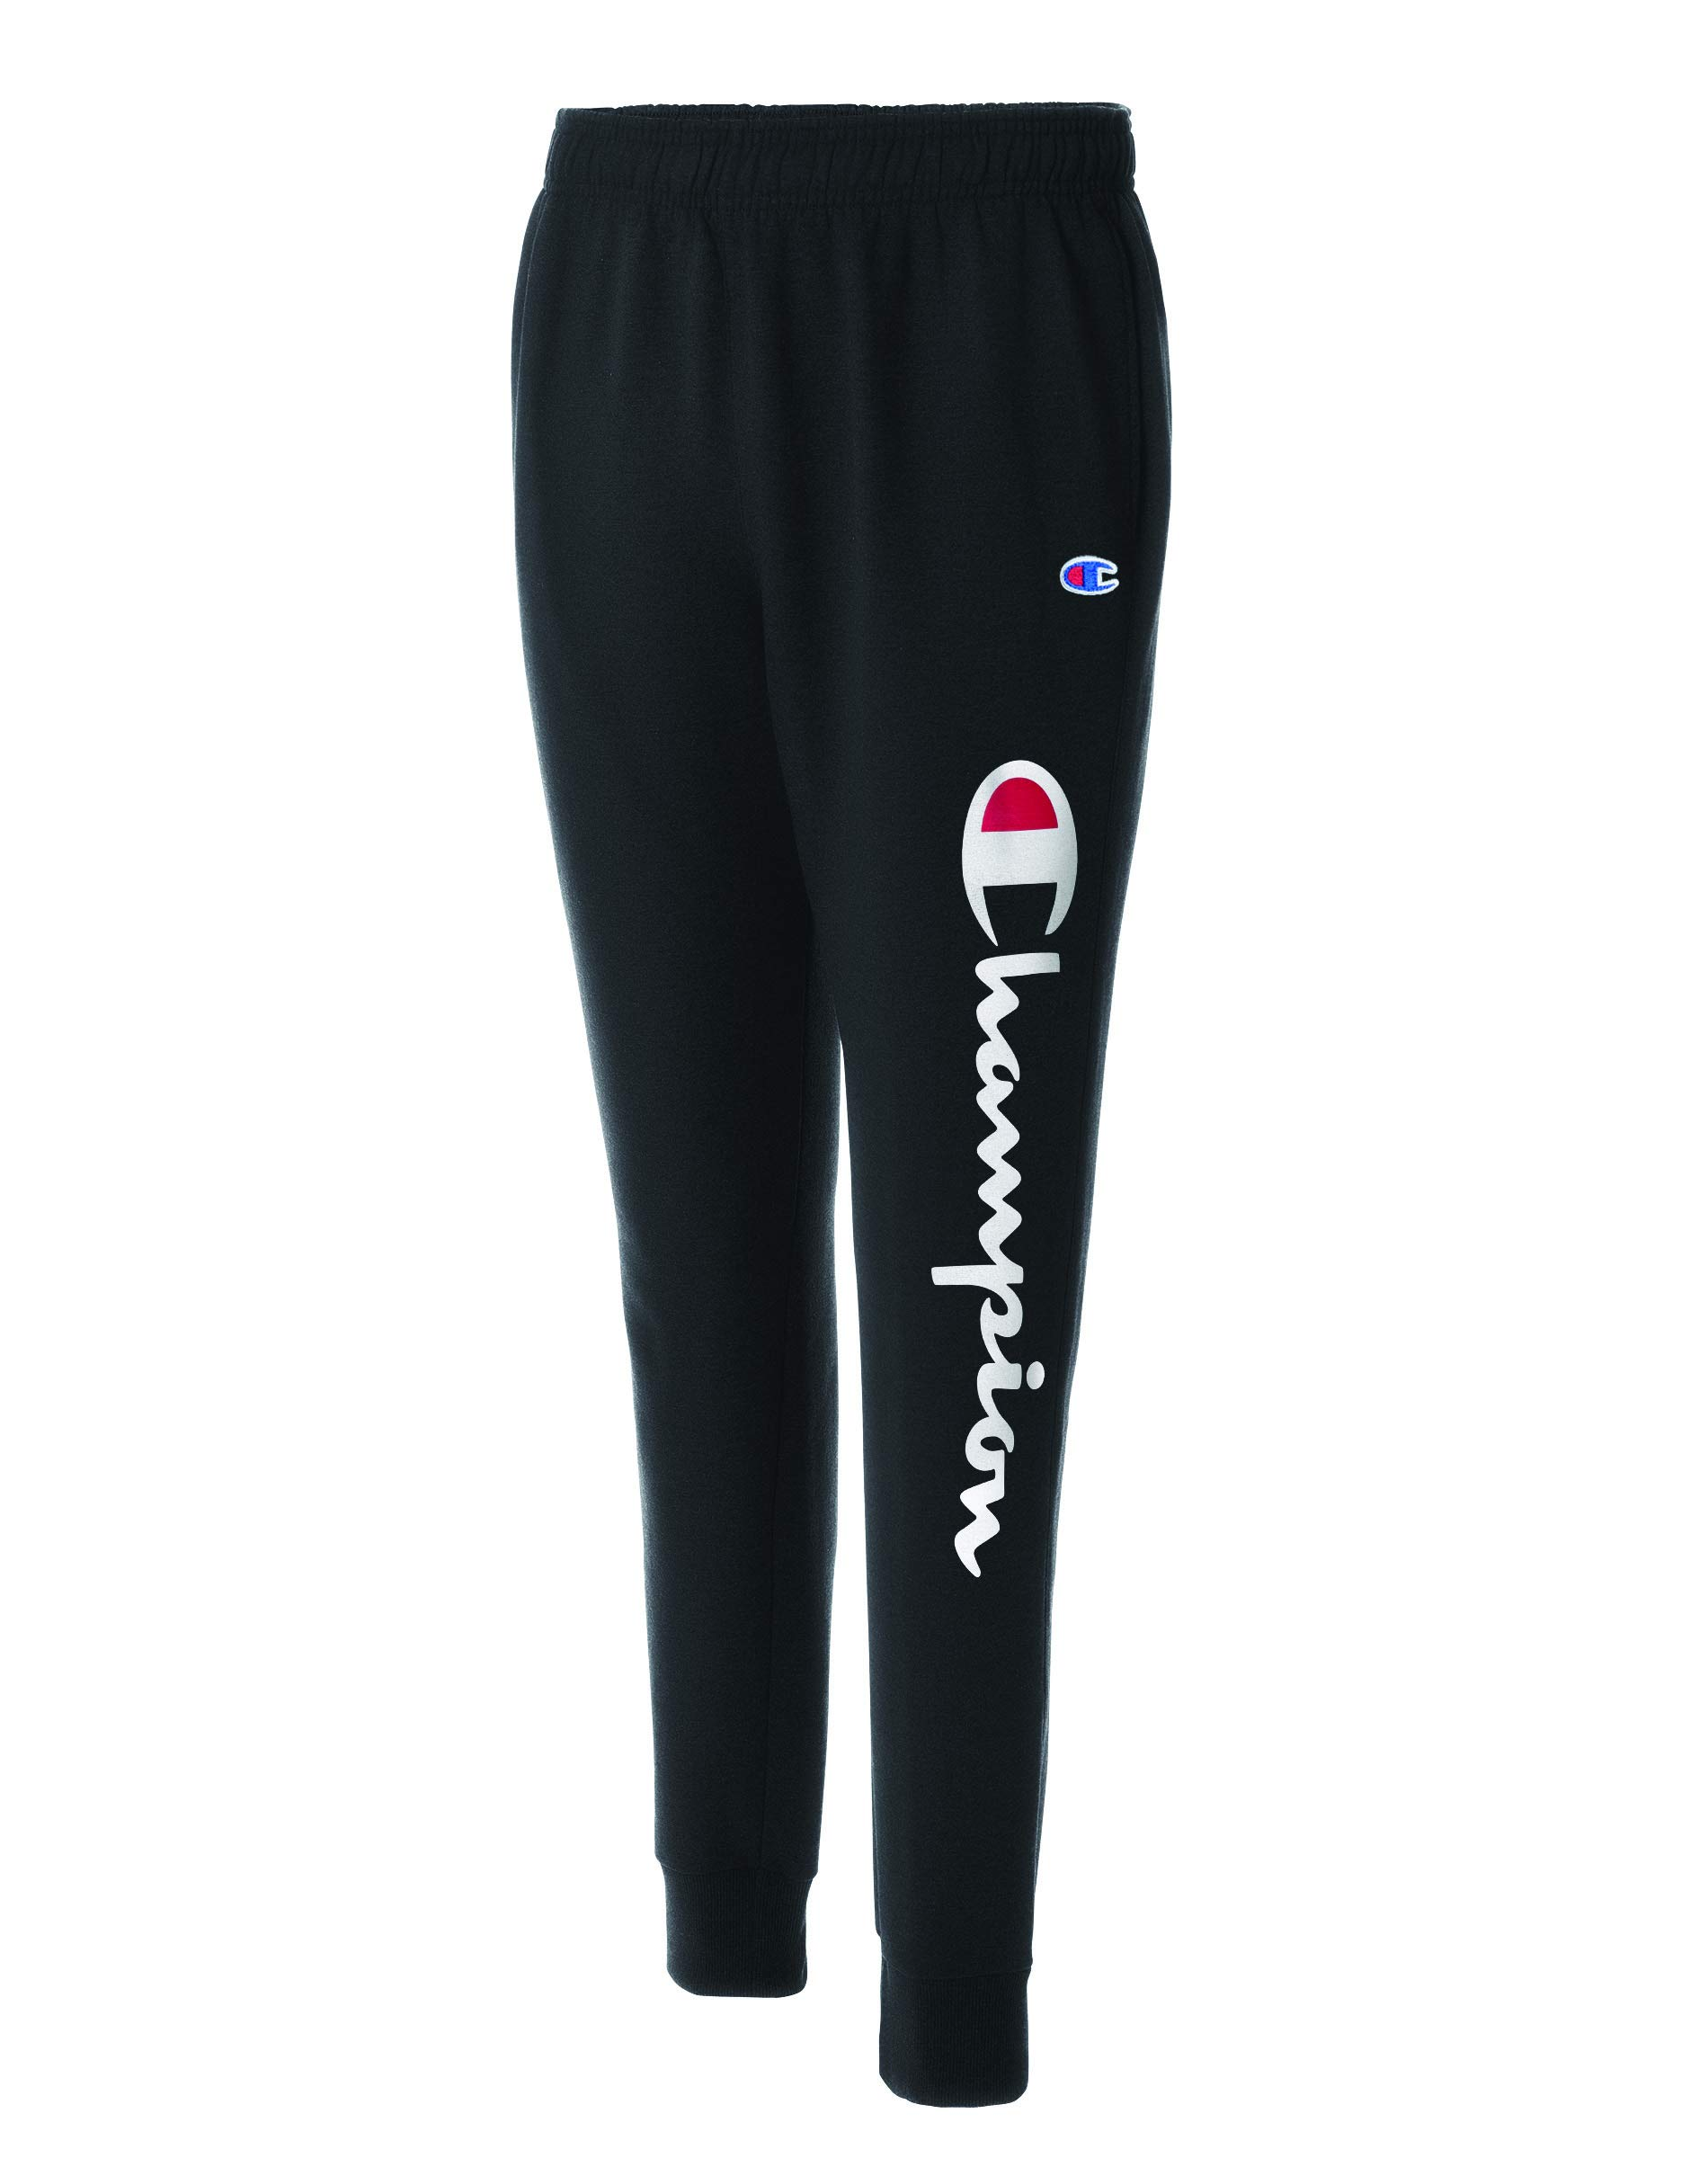 Champion Men's Graphic Powerblend Fleece Jogger, Black, Medium by Champion